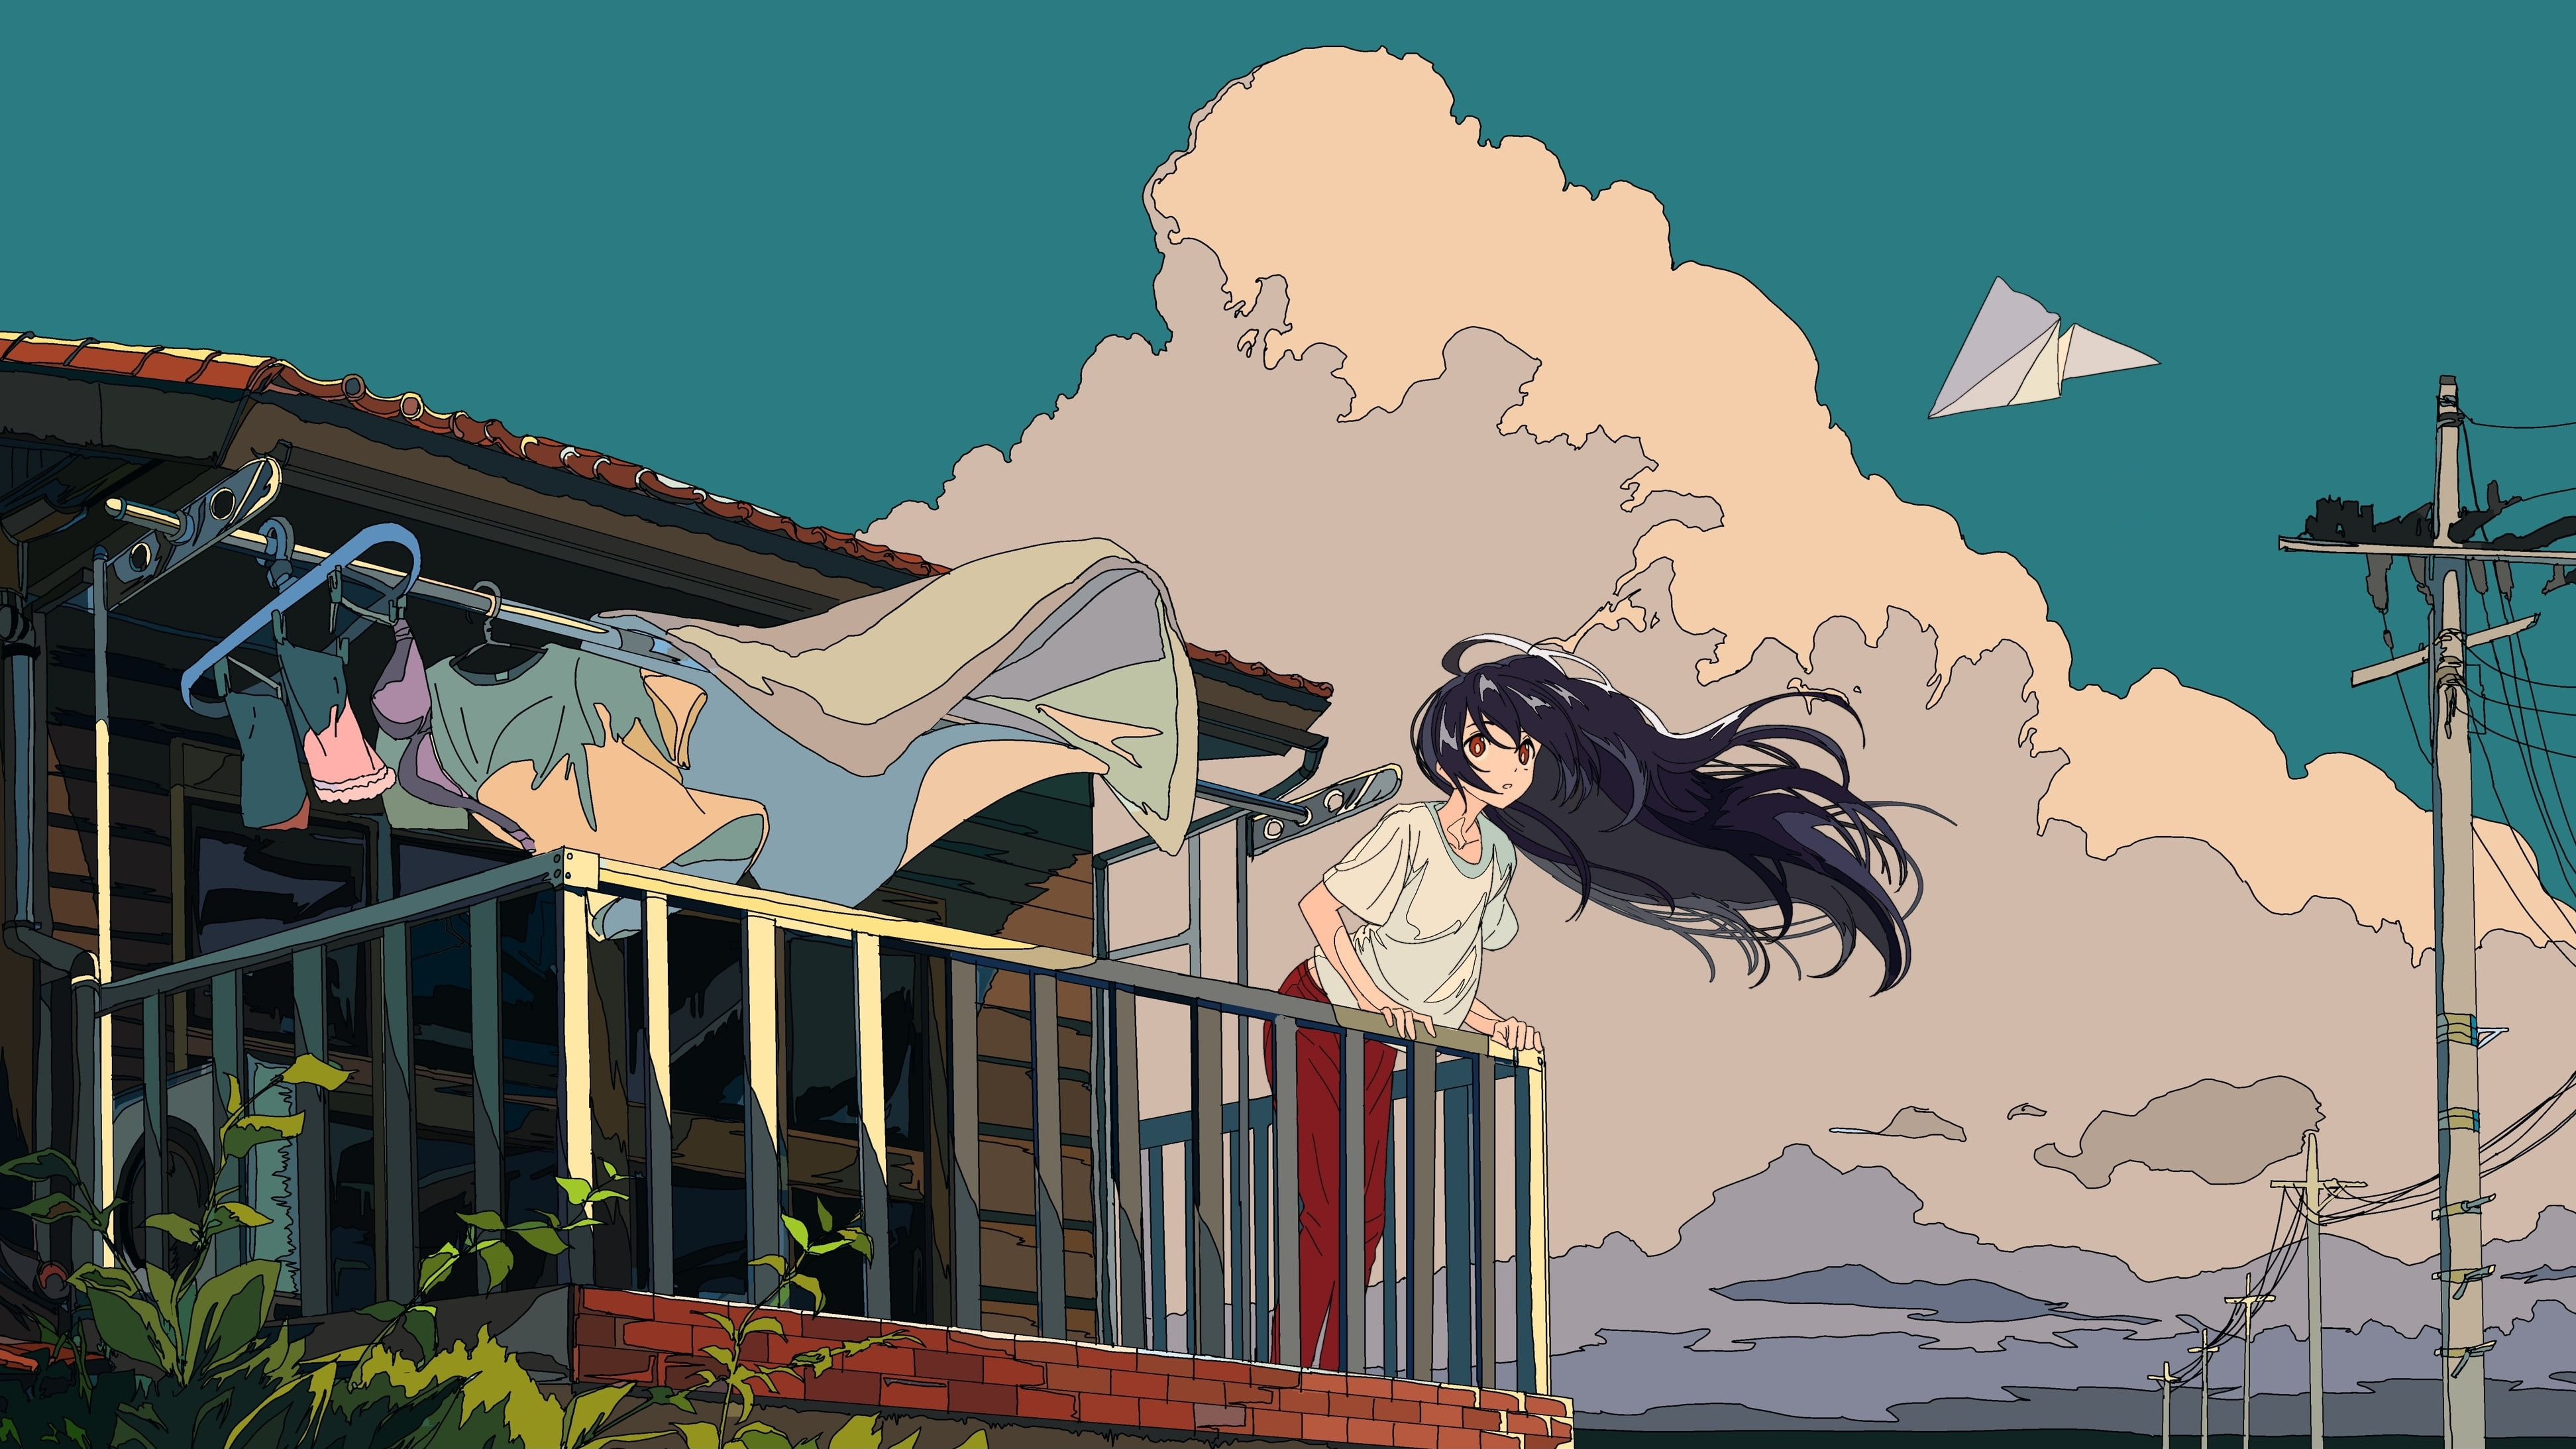 Black Haired Girl Anime Character Illustration Clouds Sky Cloth Computer Wallpaper Desktop Wallpapers Anime Backgrounds Wallpapers Anime Wallpaper 1920x1080 Aesthetic macbook wallpaper anime